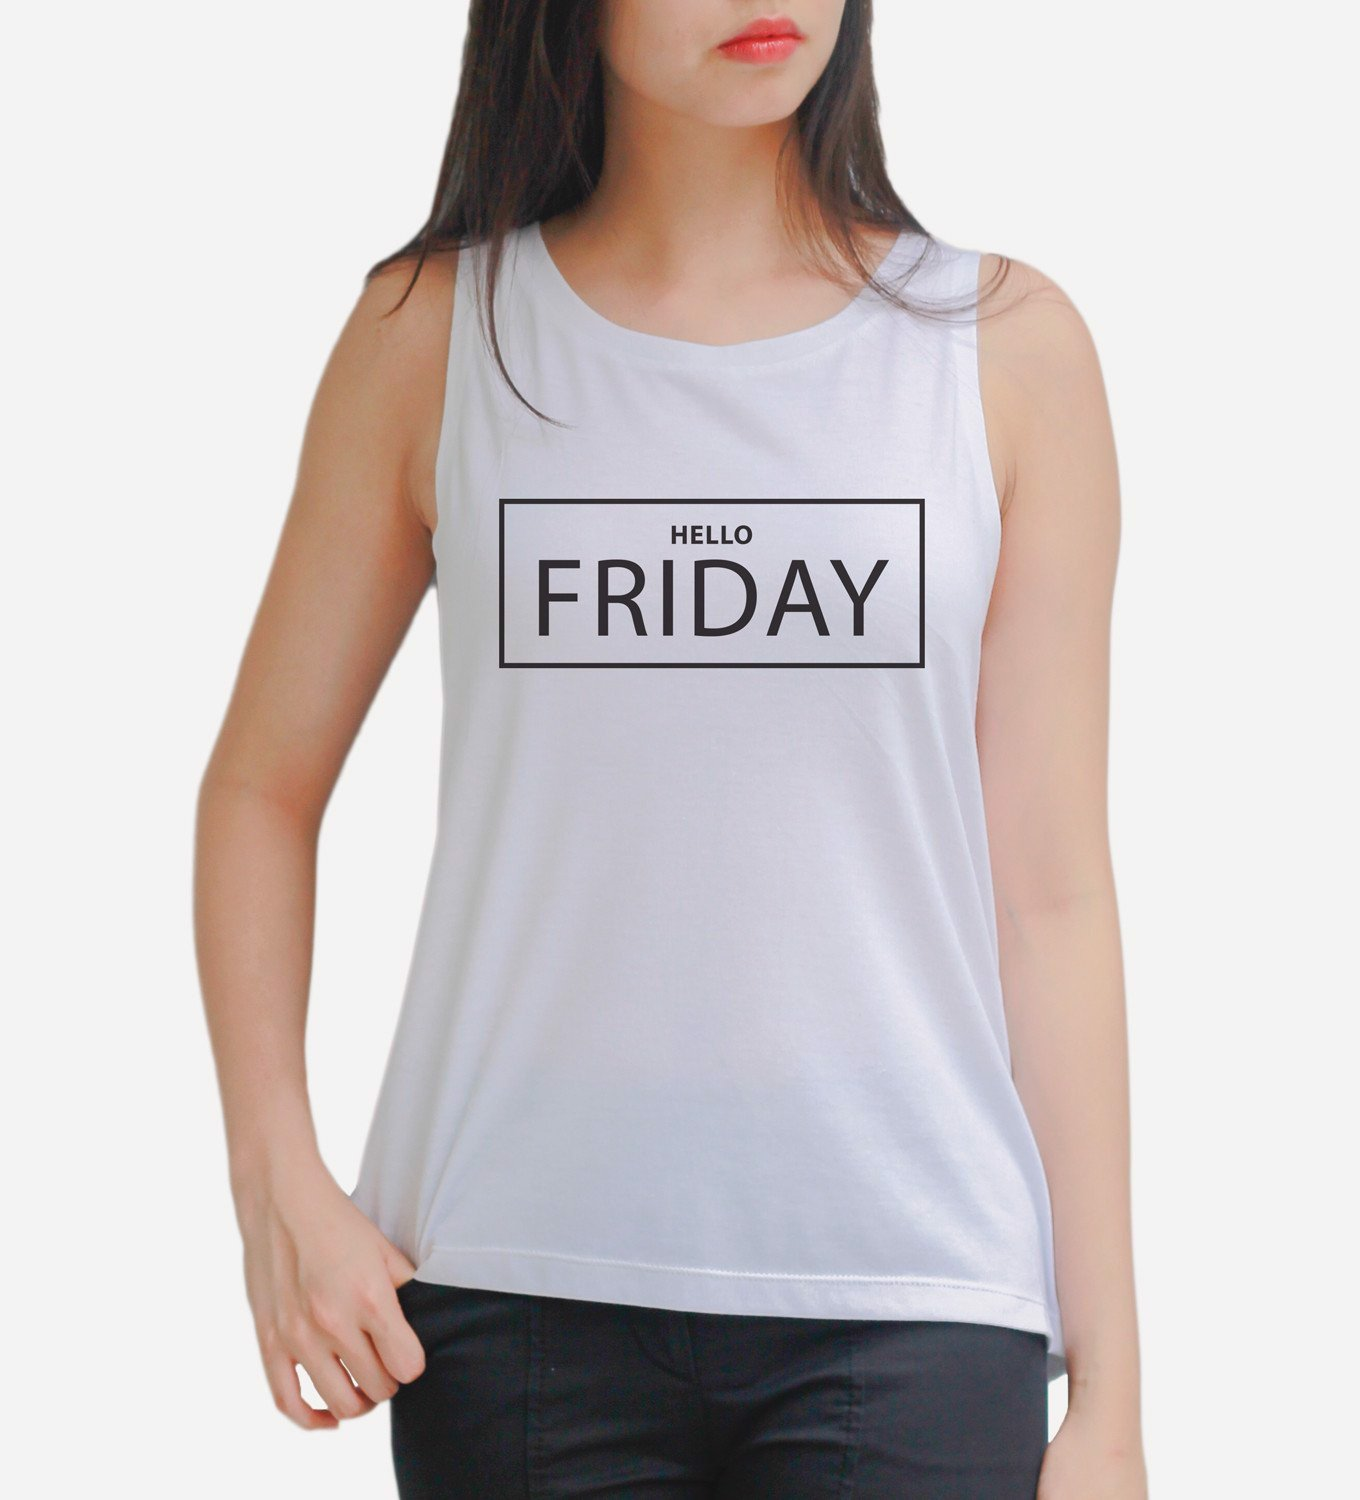 Friday Tank Top